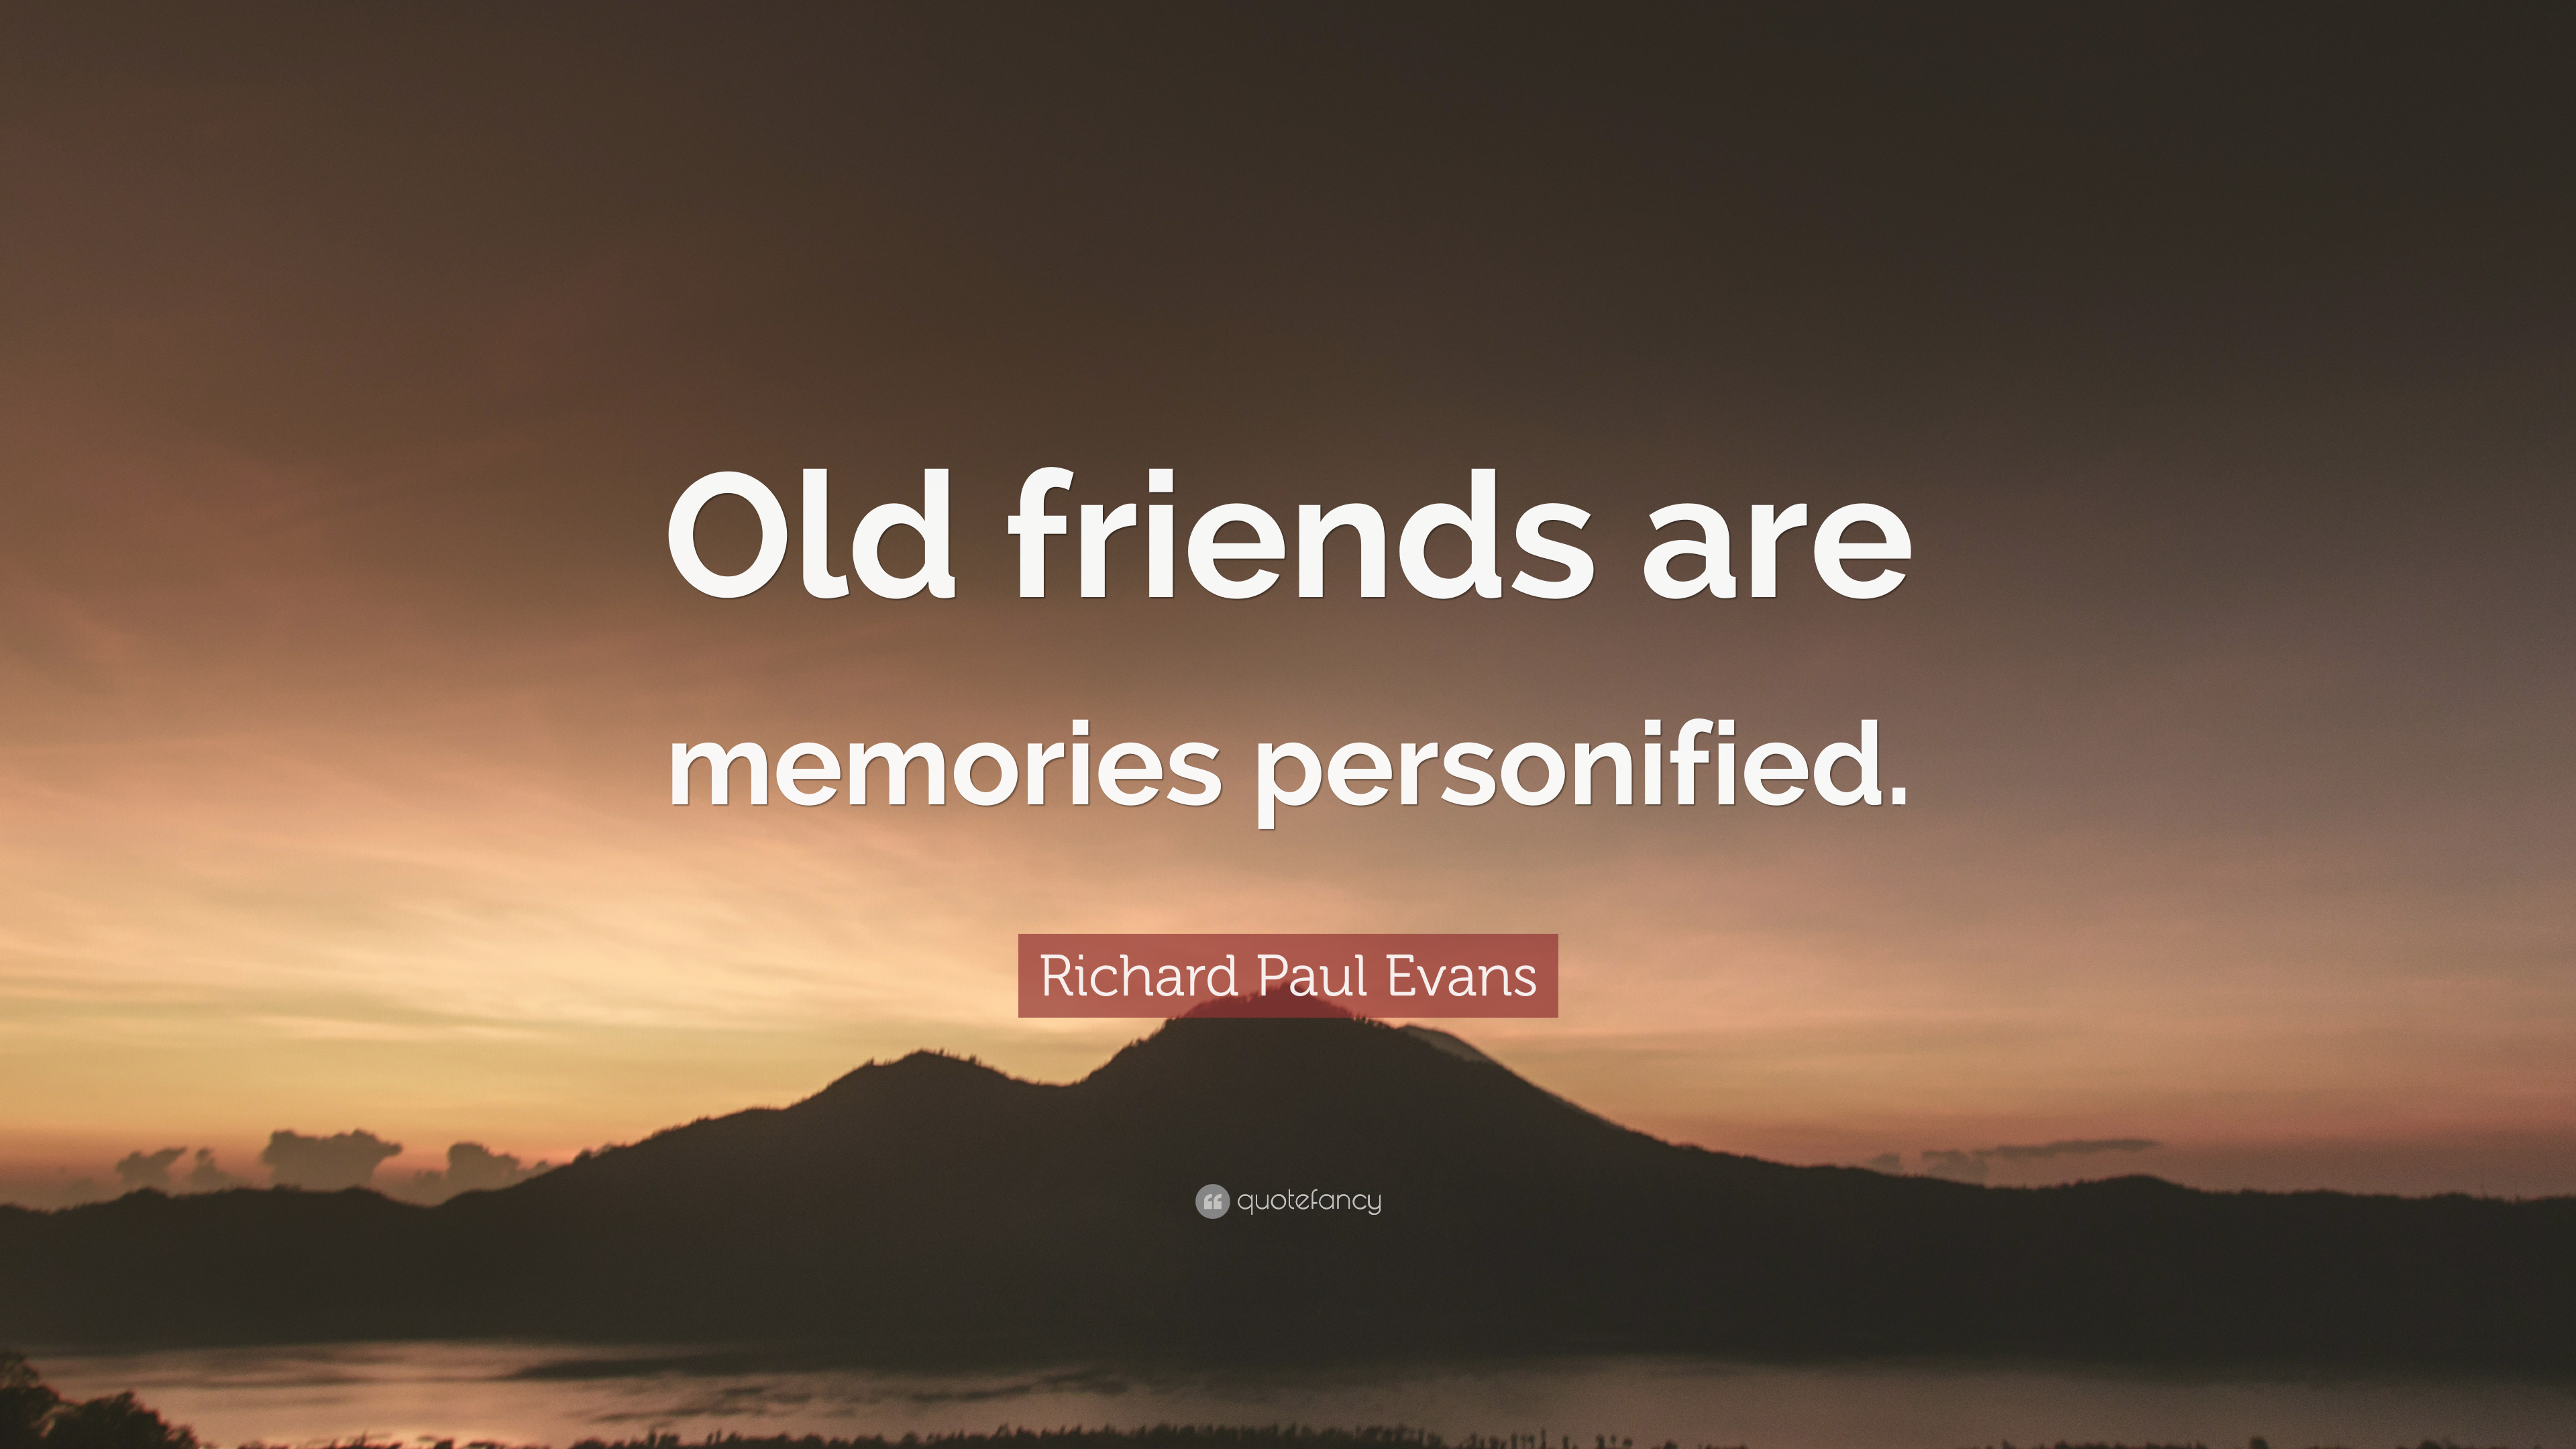 Friend Quotes Old Friend Quotes Memories